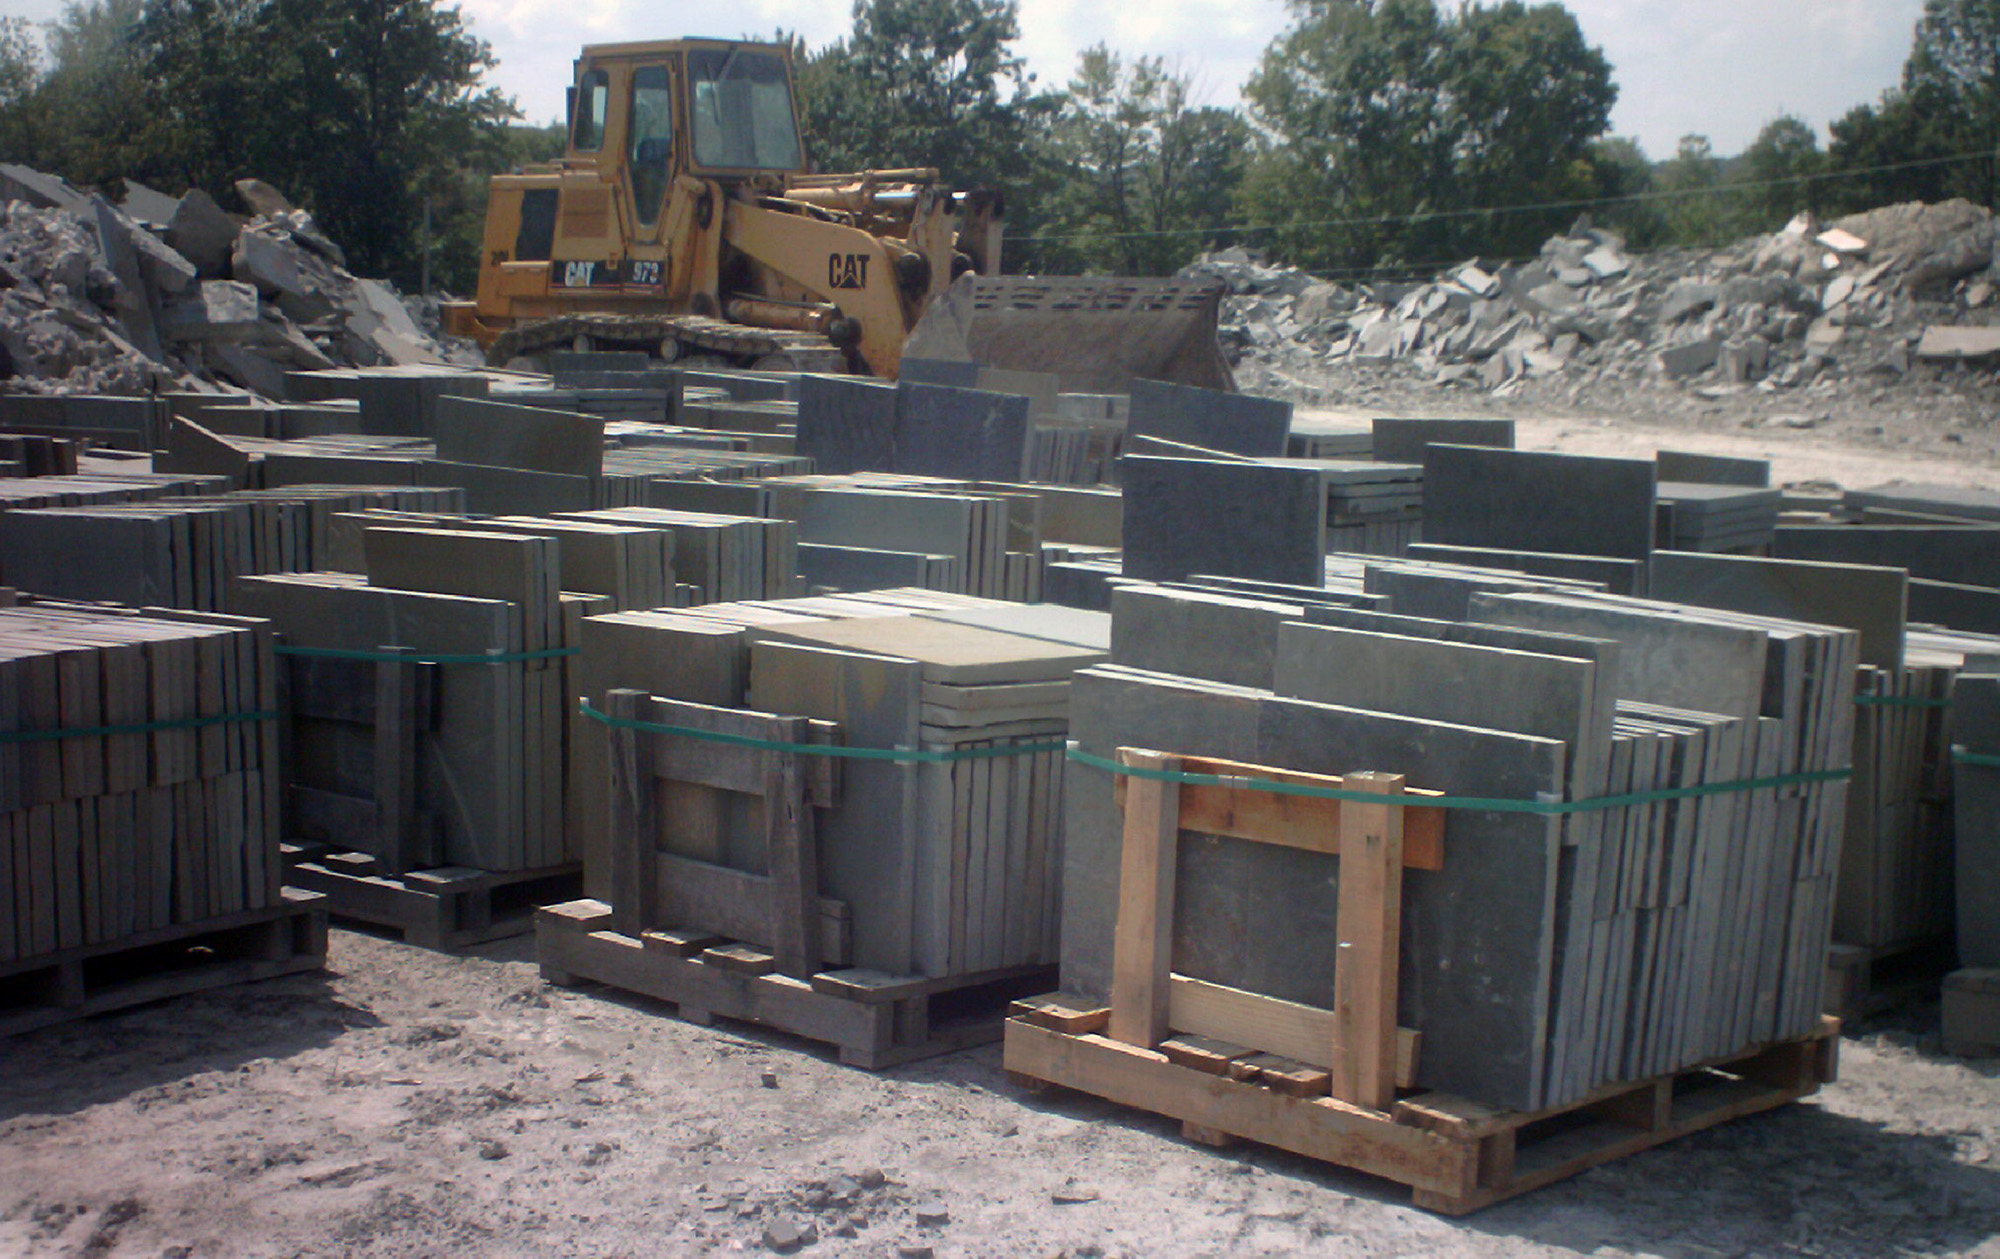 Stone dealer with palettes of bluestone cut into a variety of rectangular shapes and sizes.